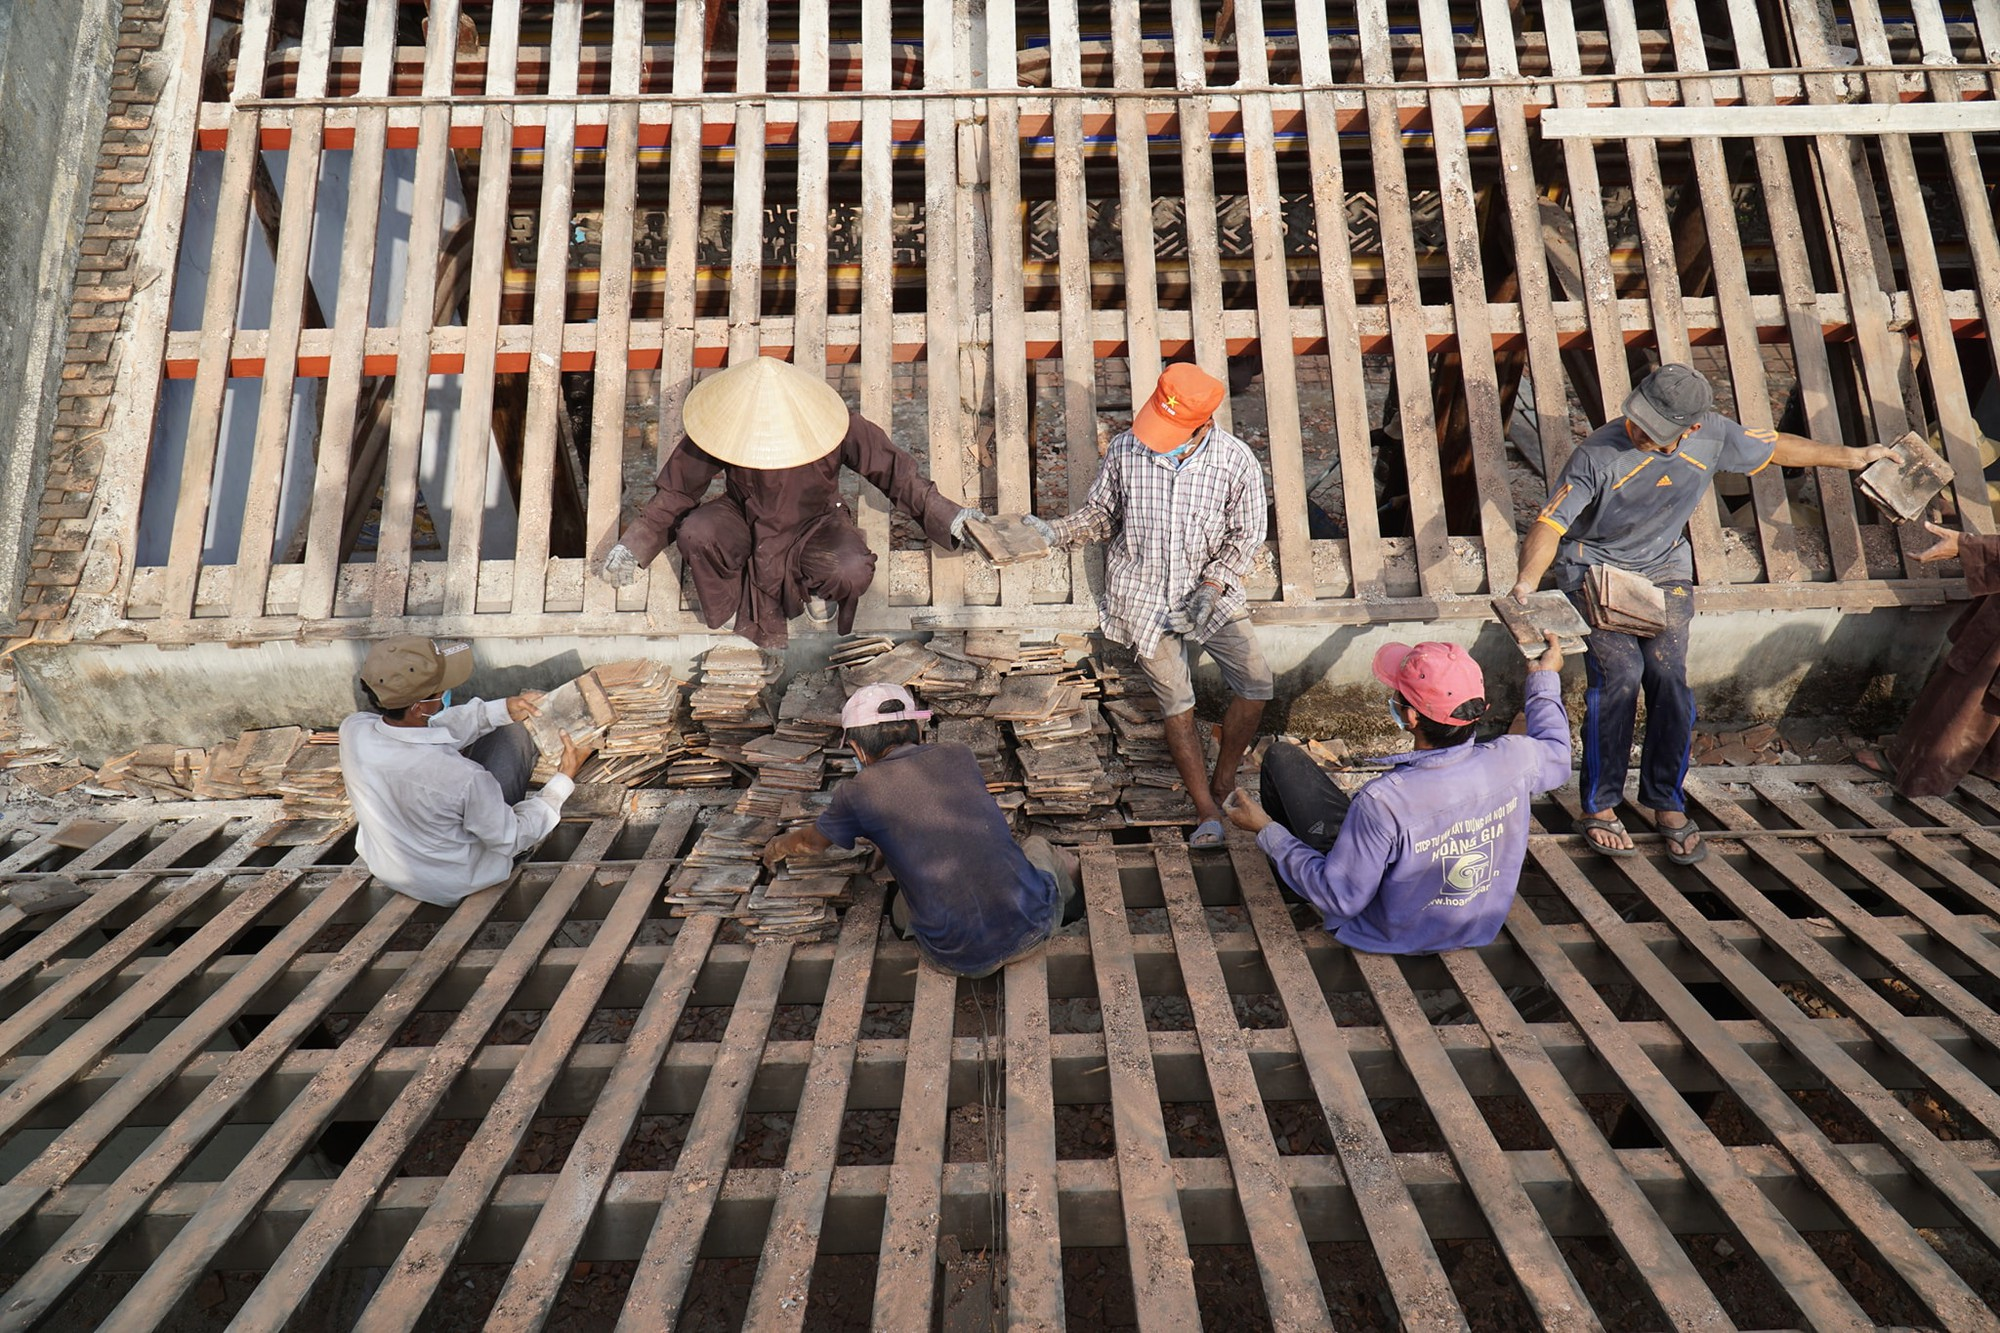 Workers build the new main structure of the Tu Hieu Pagoda in Hue, Vietnam in this photo uploaded to the pagoda's official Facebook page.